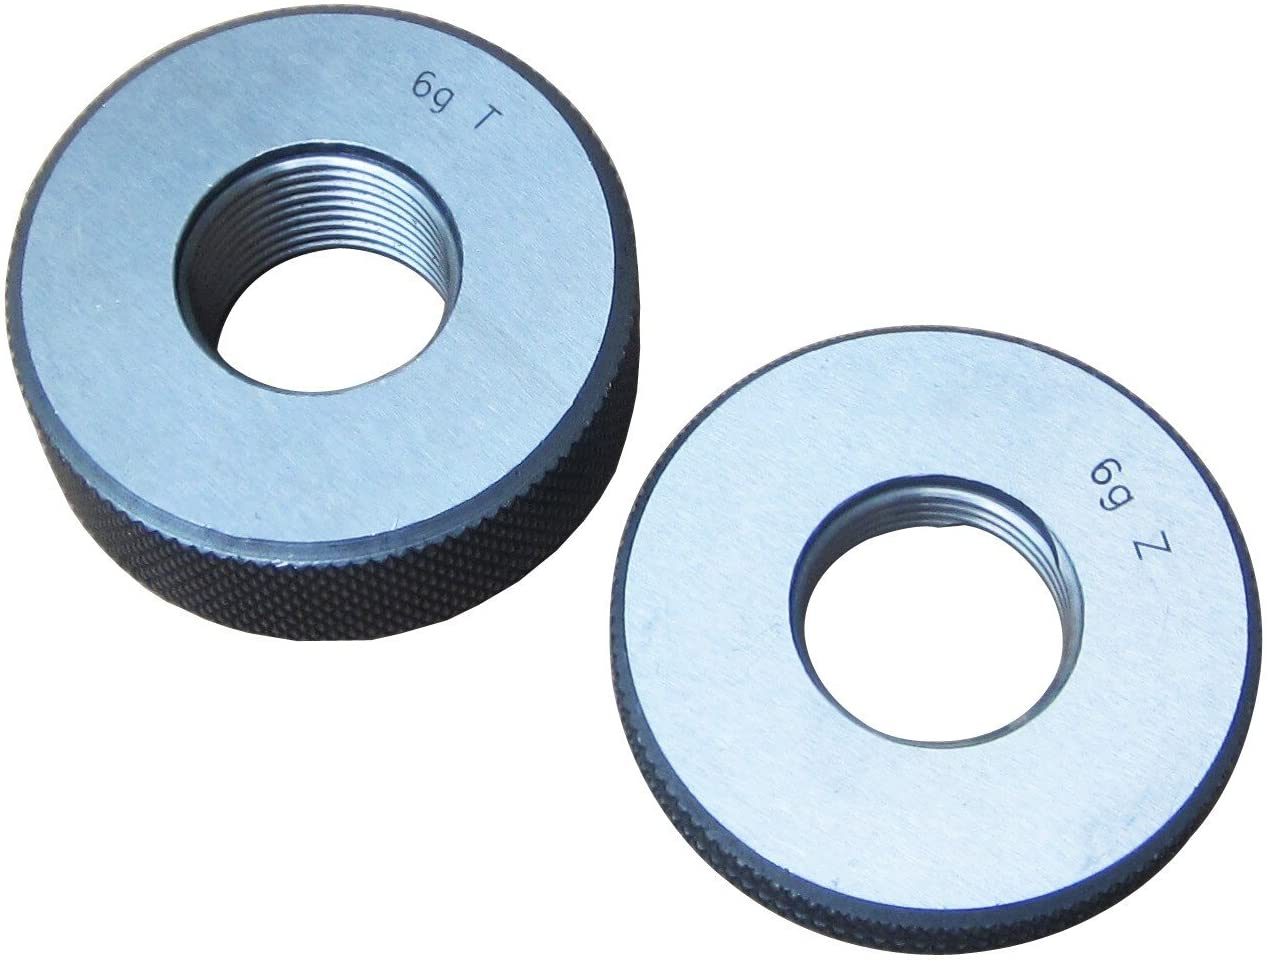 20mm x 1 Metric Thread Ring Gage M20 x 1.0mm Pitch